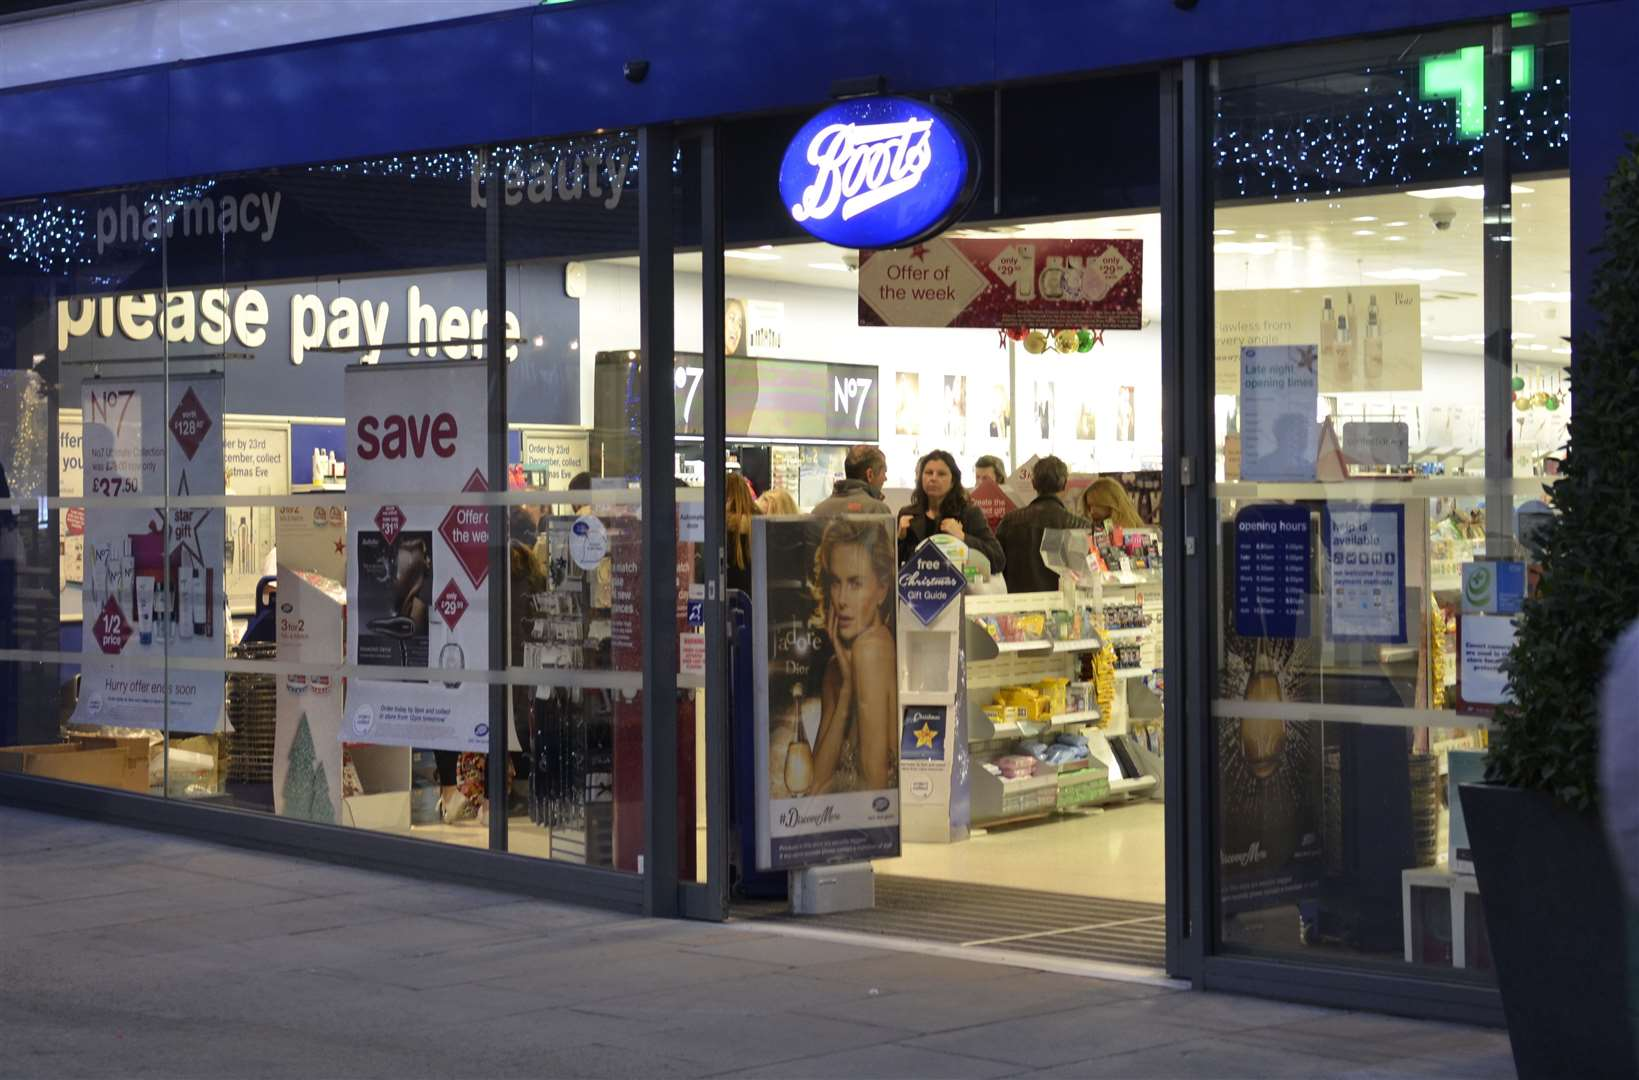 The Boots branch at Fremlin Walk in Maidstone